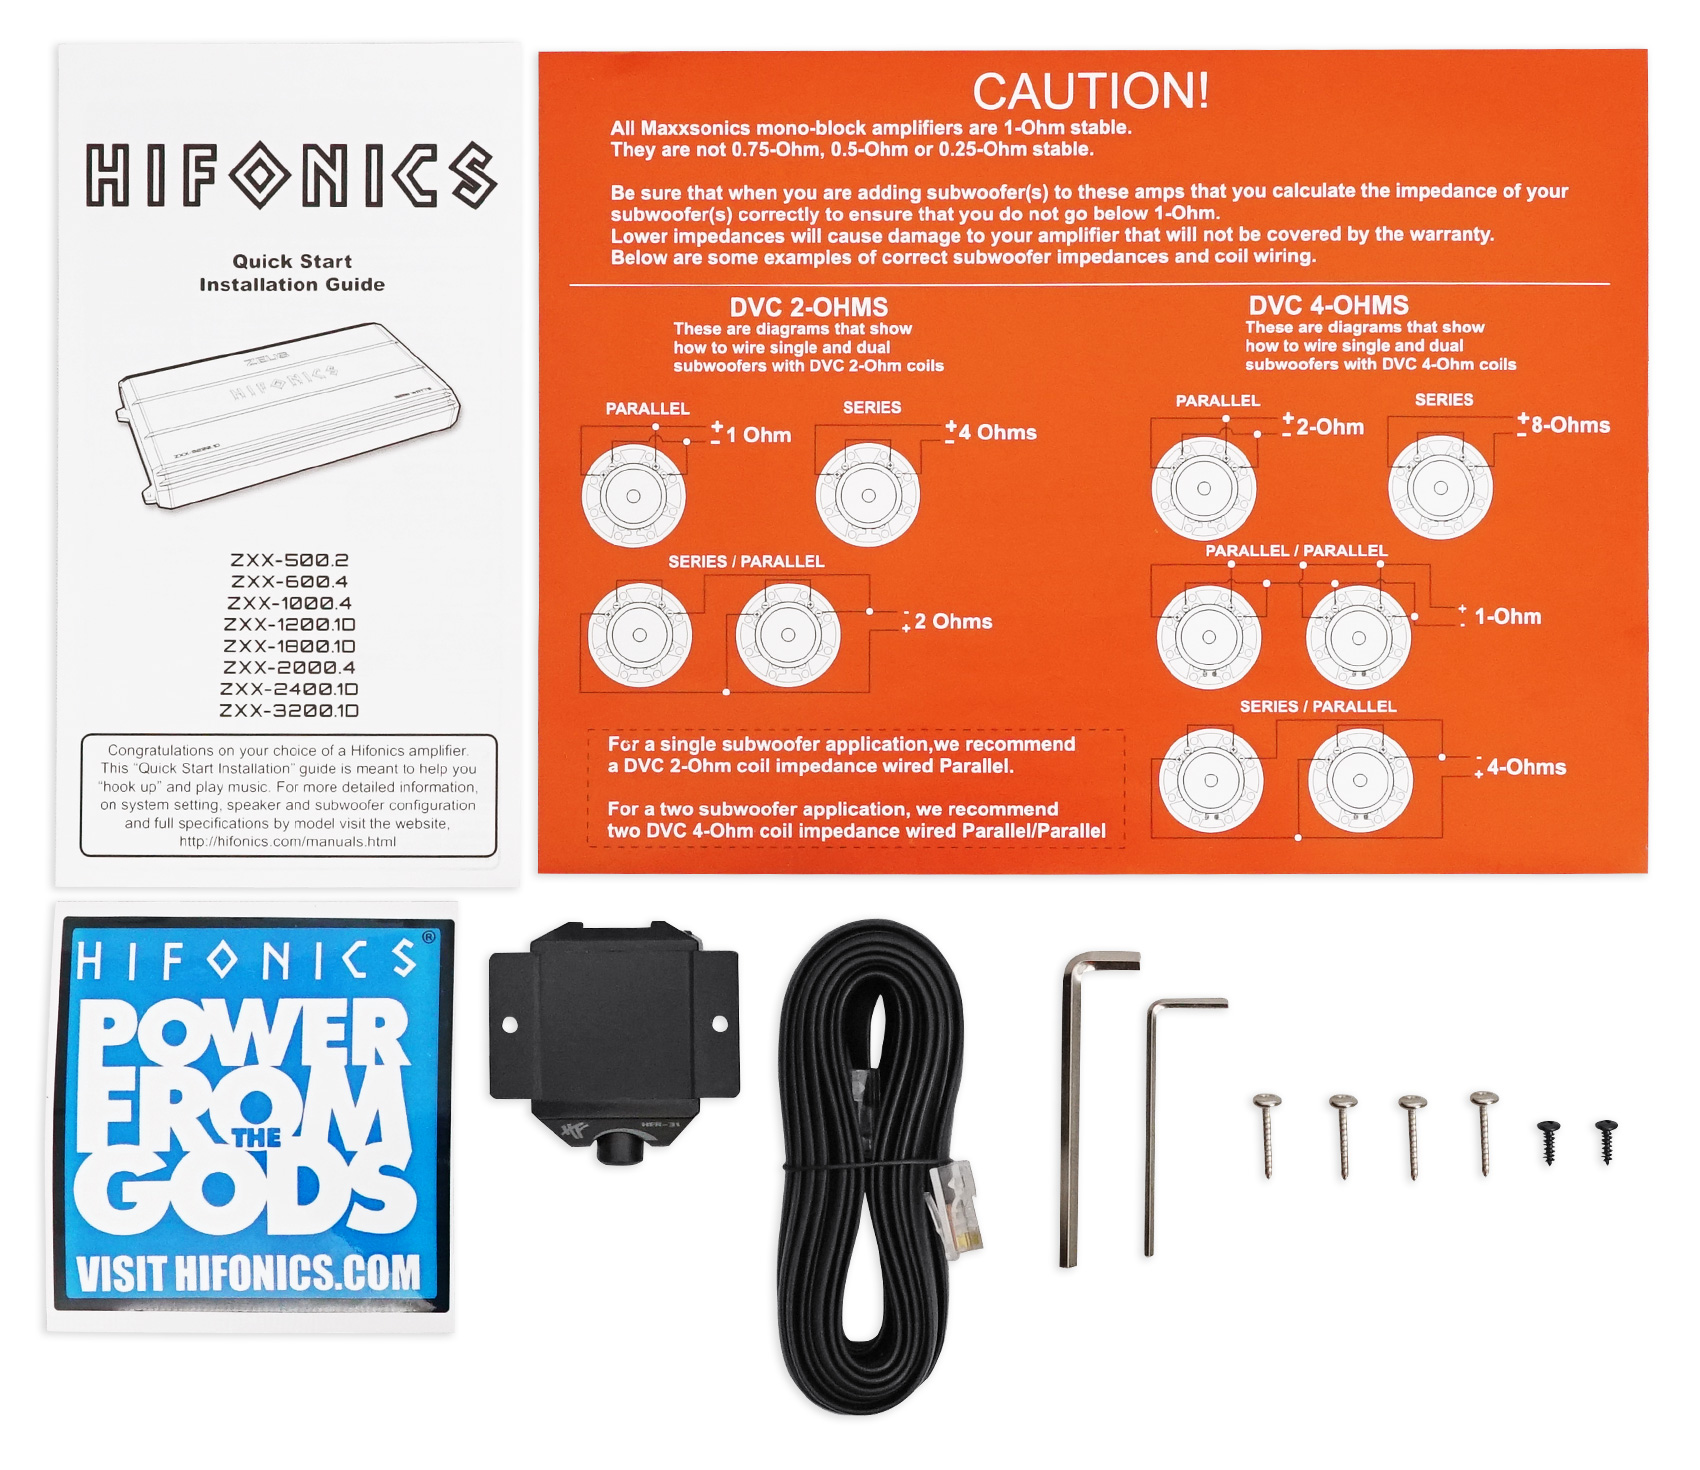 Hifonics amp wiring diagram free carlo monte carlo wiring diagram 1985 hifonics zeus zxx 32001d 3200w rms mono car audio amplifier amp kit 4a111b0b d85f 4d72 af7f 46654f203fb5 1 337480567 hifonics amp wiring diagram free asfbconference2016 Image collections